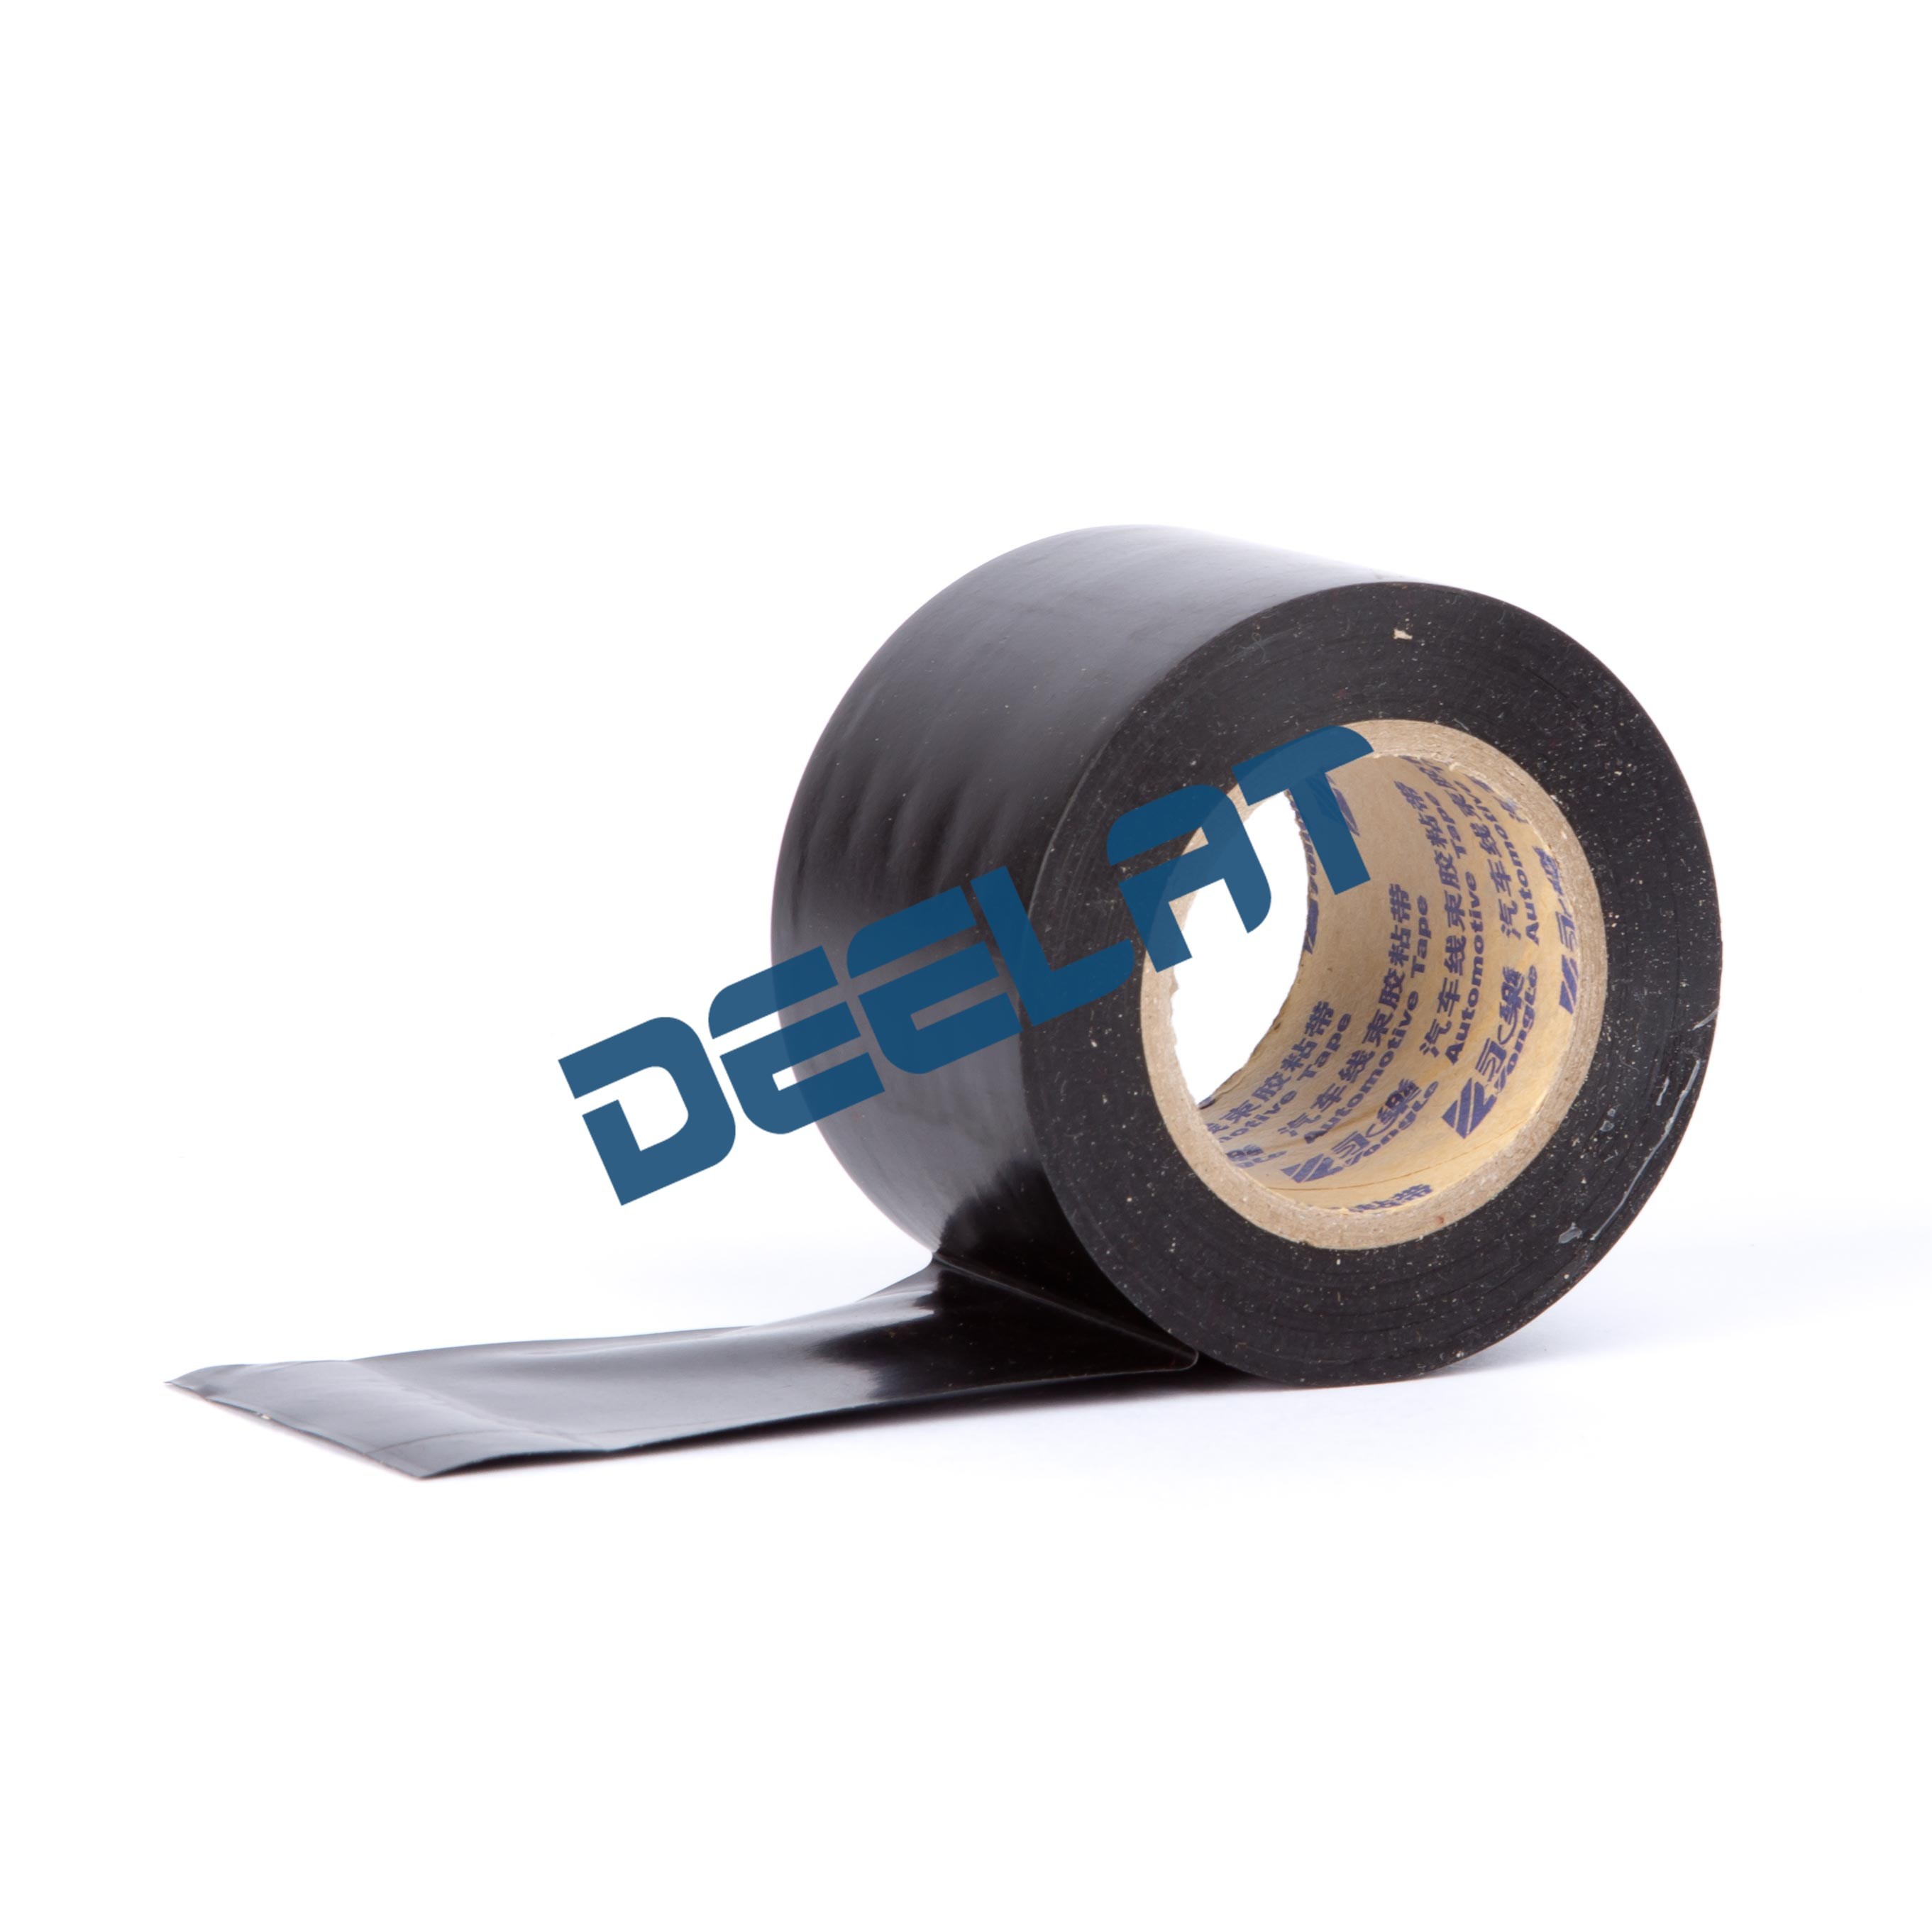 Auto IWre Harness Tape deelat blog automotive wire harness tape uses, types and auto wire harness tape at virtualis.co